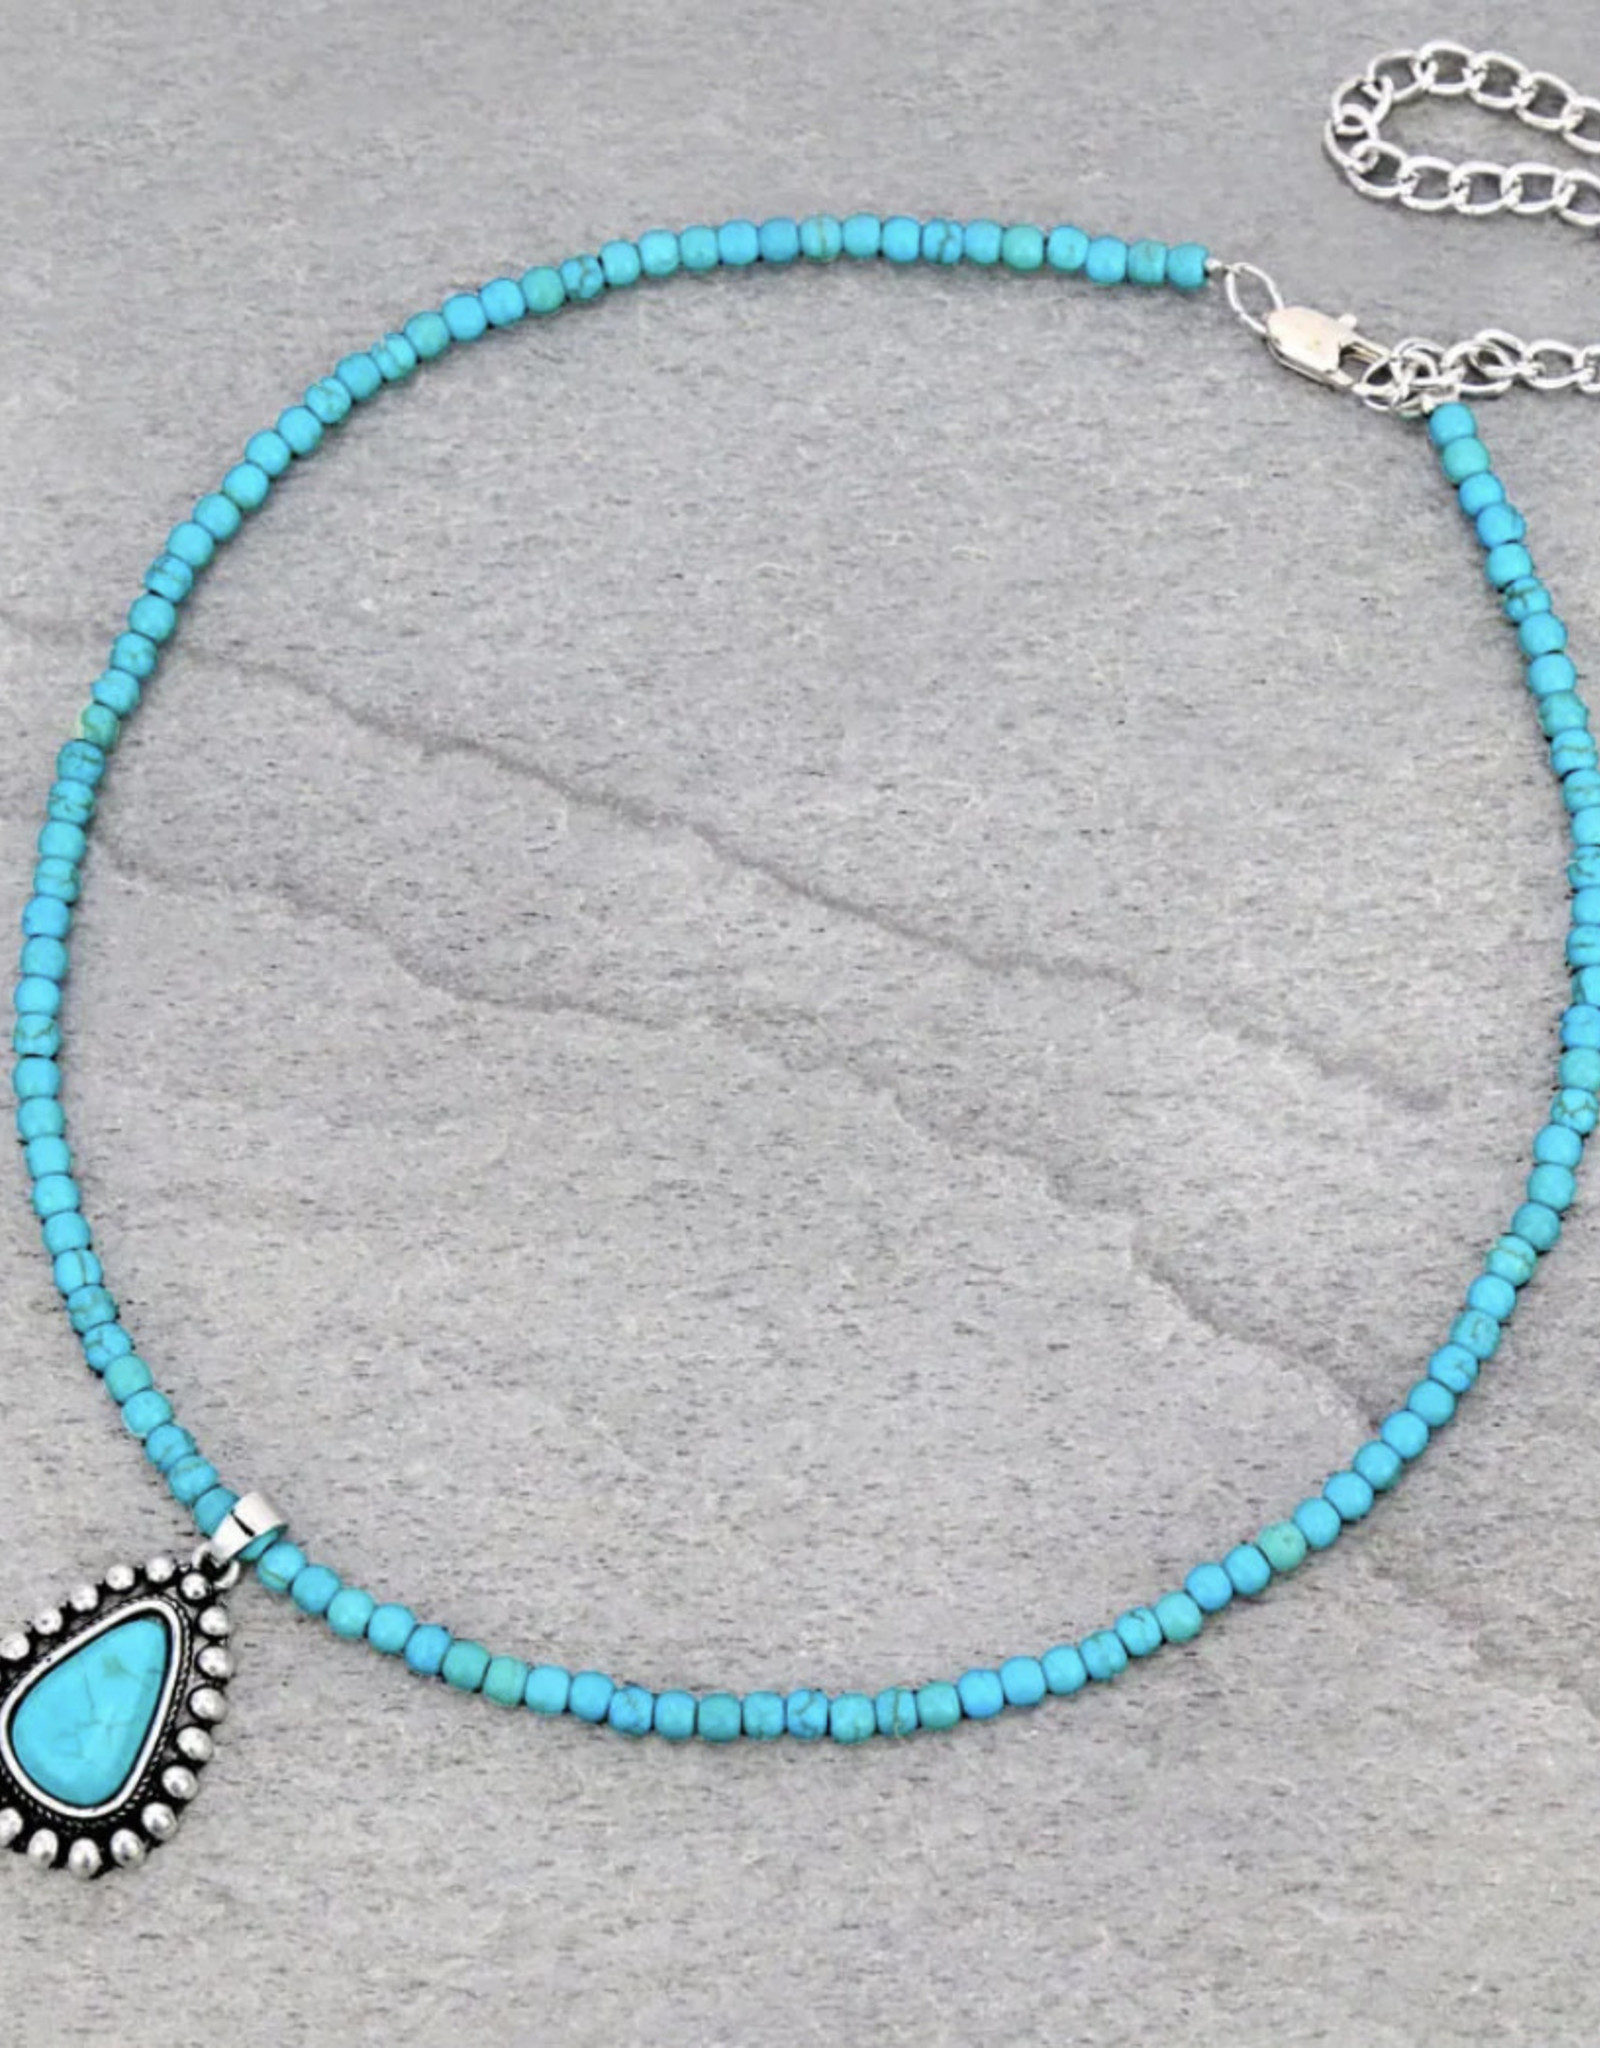 NECKLACE NATURAL STONE 4MM BEAD TURQUOISE W PENDANT